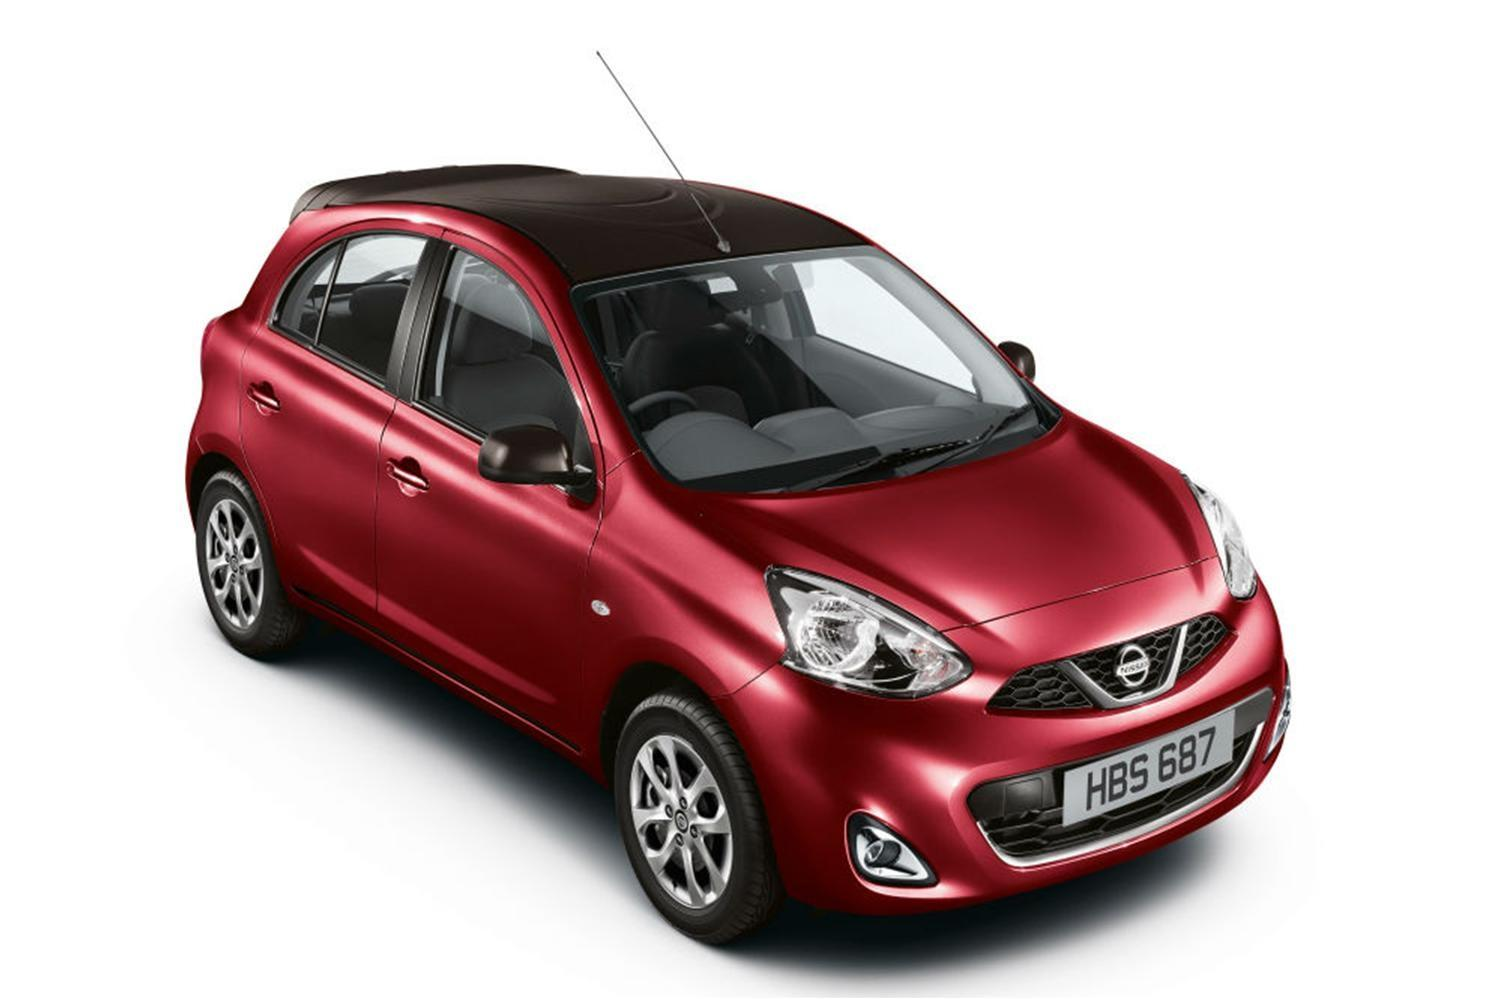 New Nissan Micra Limited Edition launched